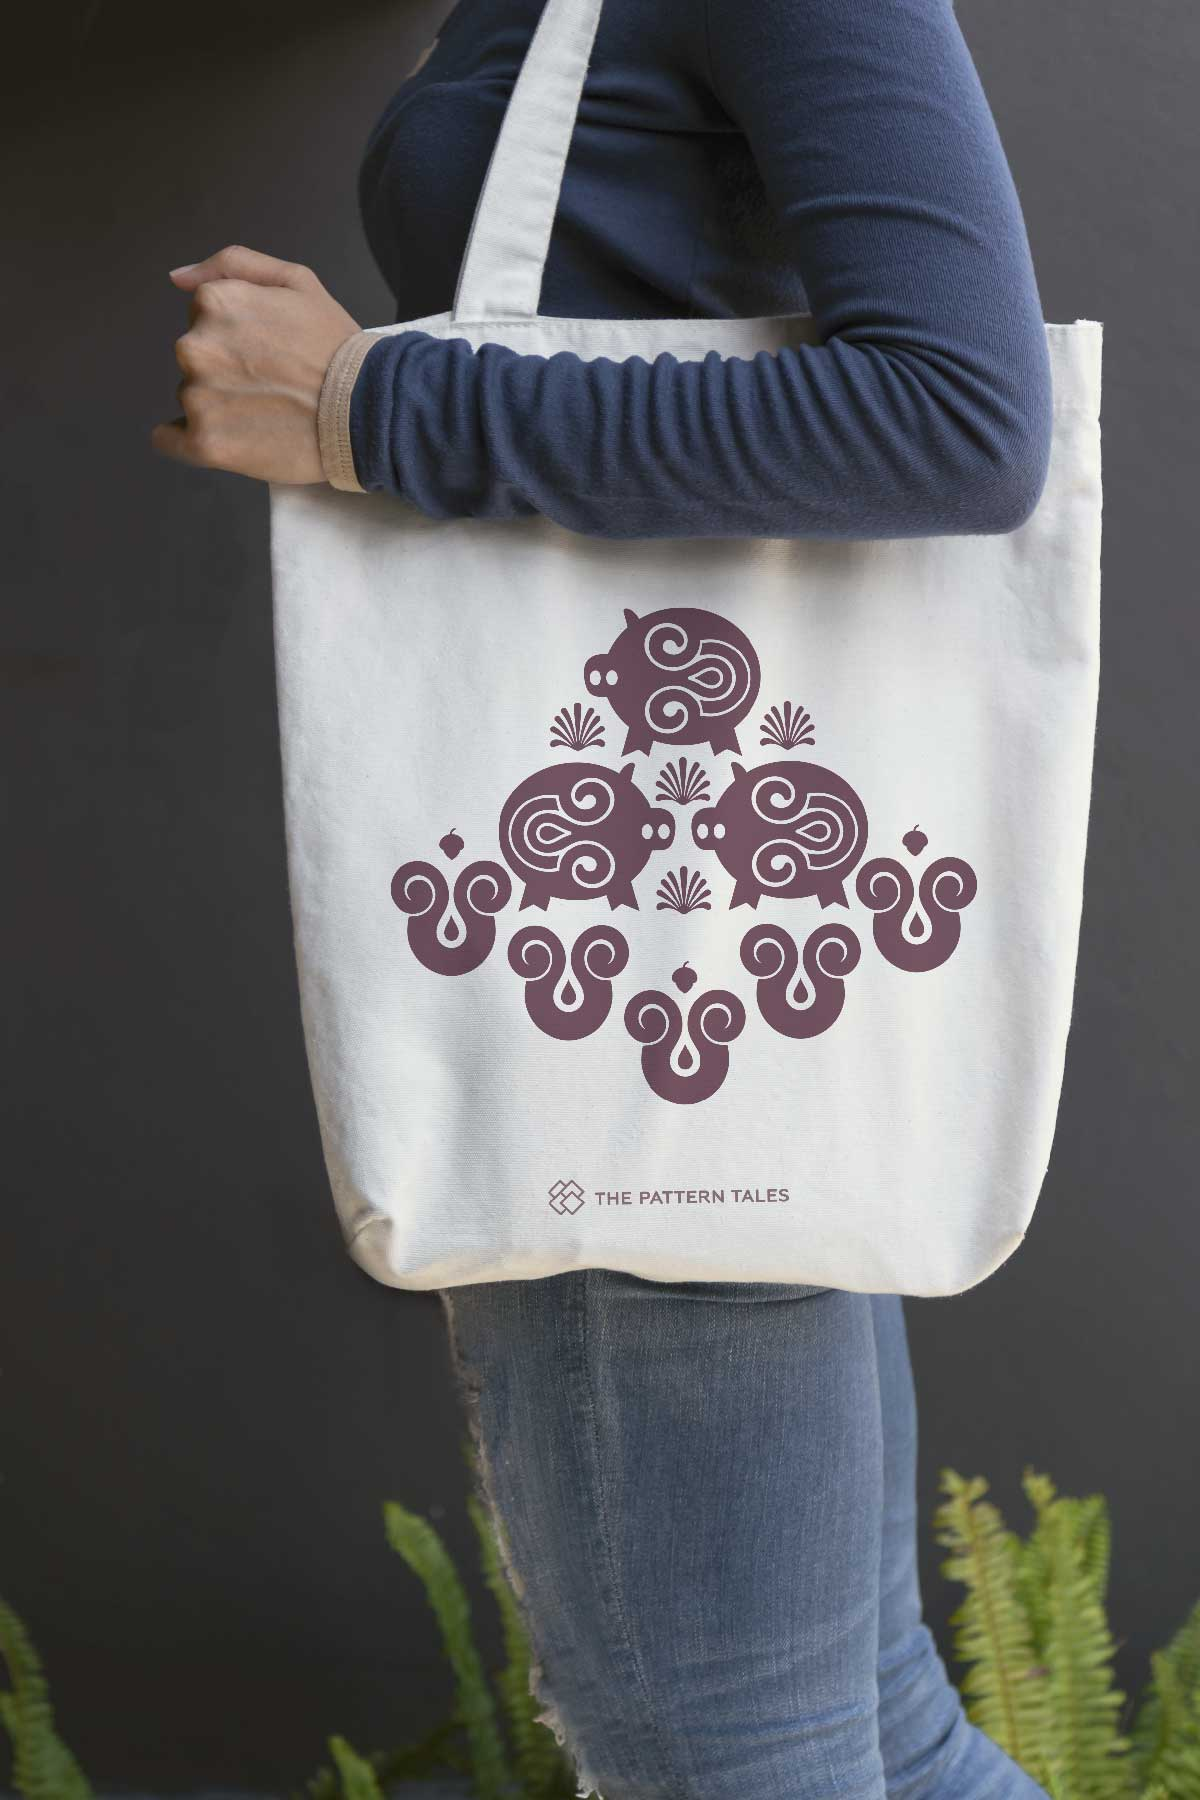 Circe: limited edition tote bag designed by Chiara Aliotta